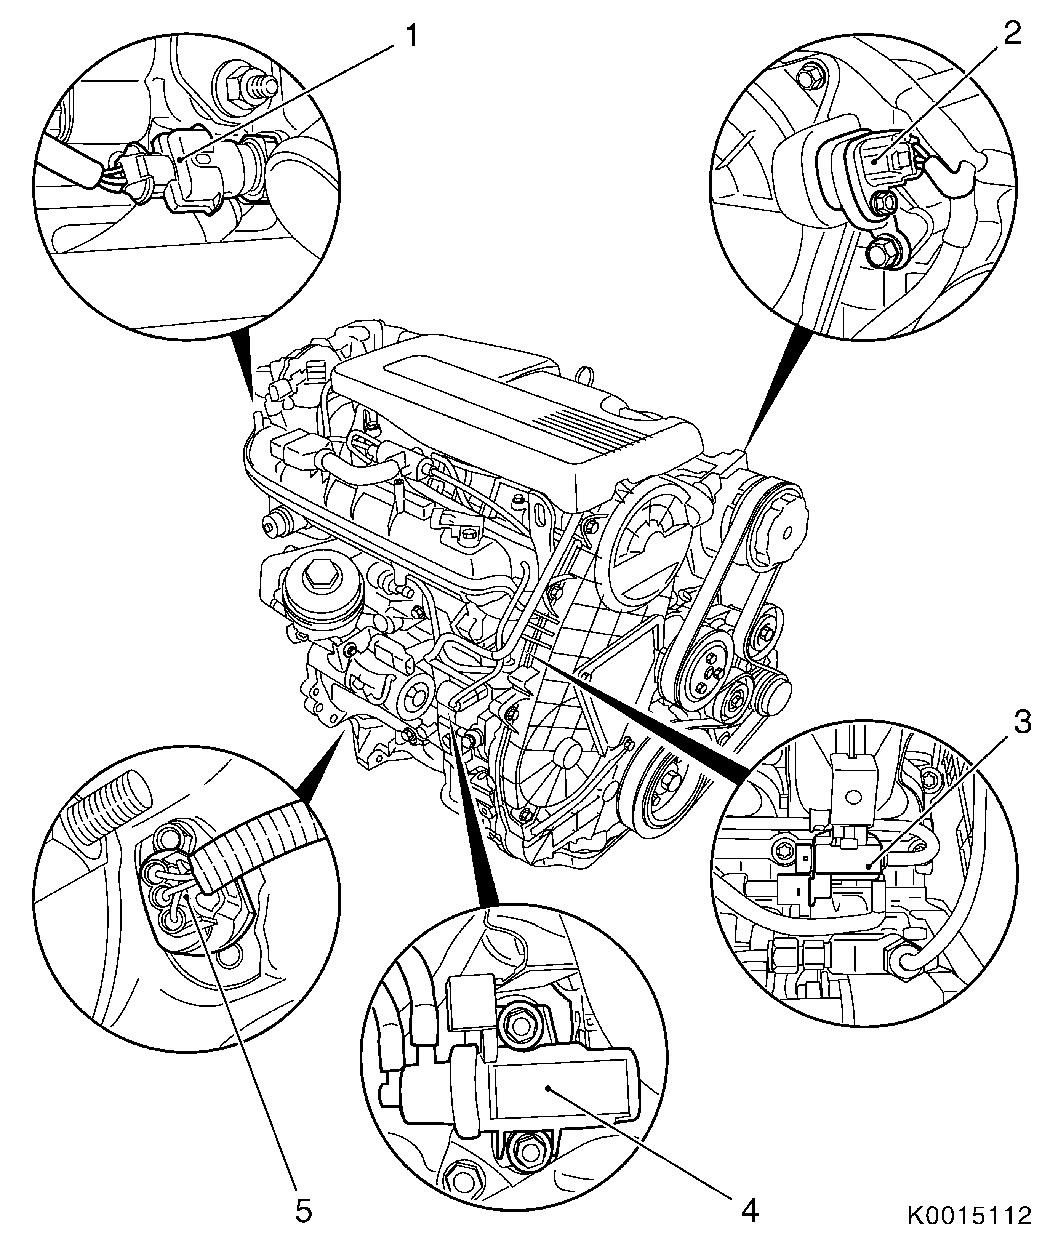 Opel corsa c fuse box diagram engine diagram for vauxhall corsa at nhrt info